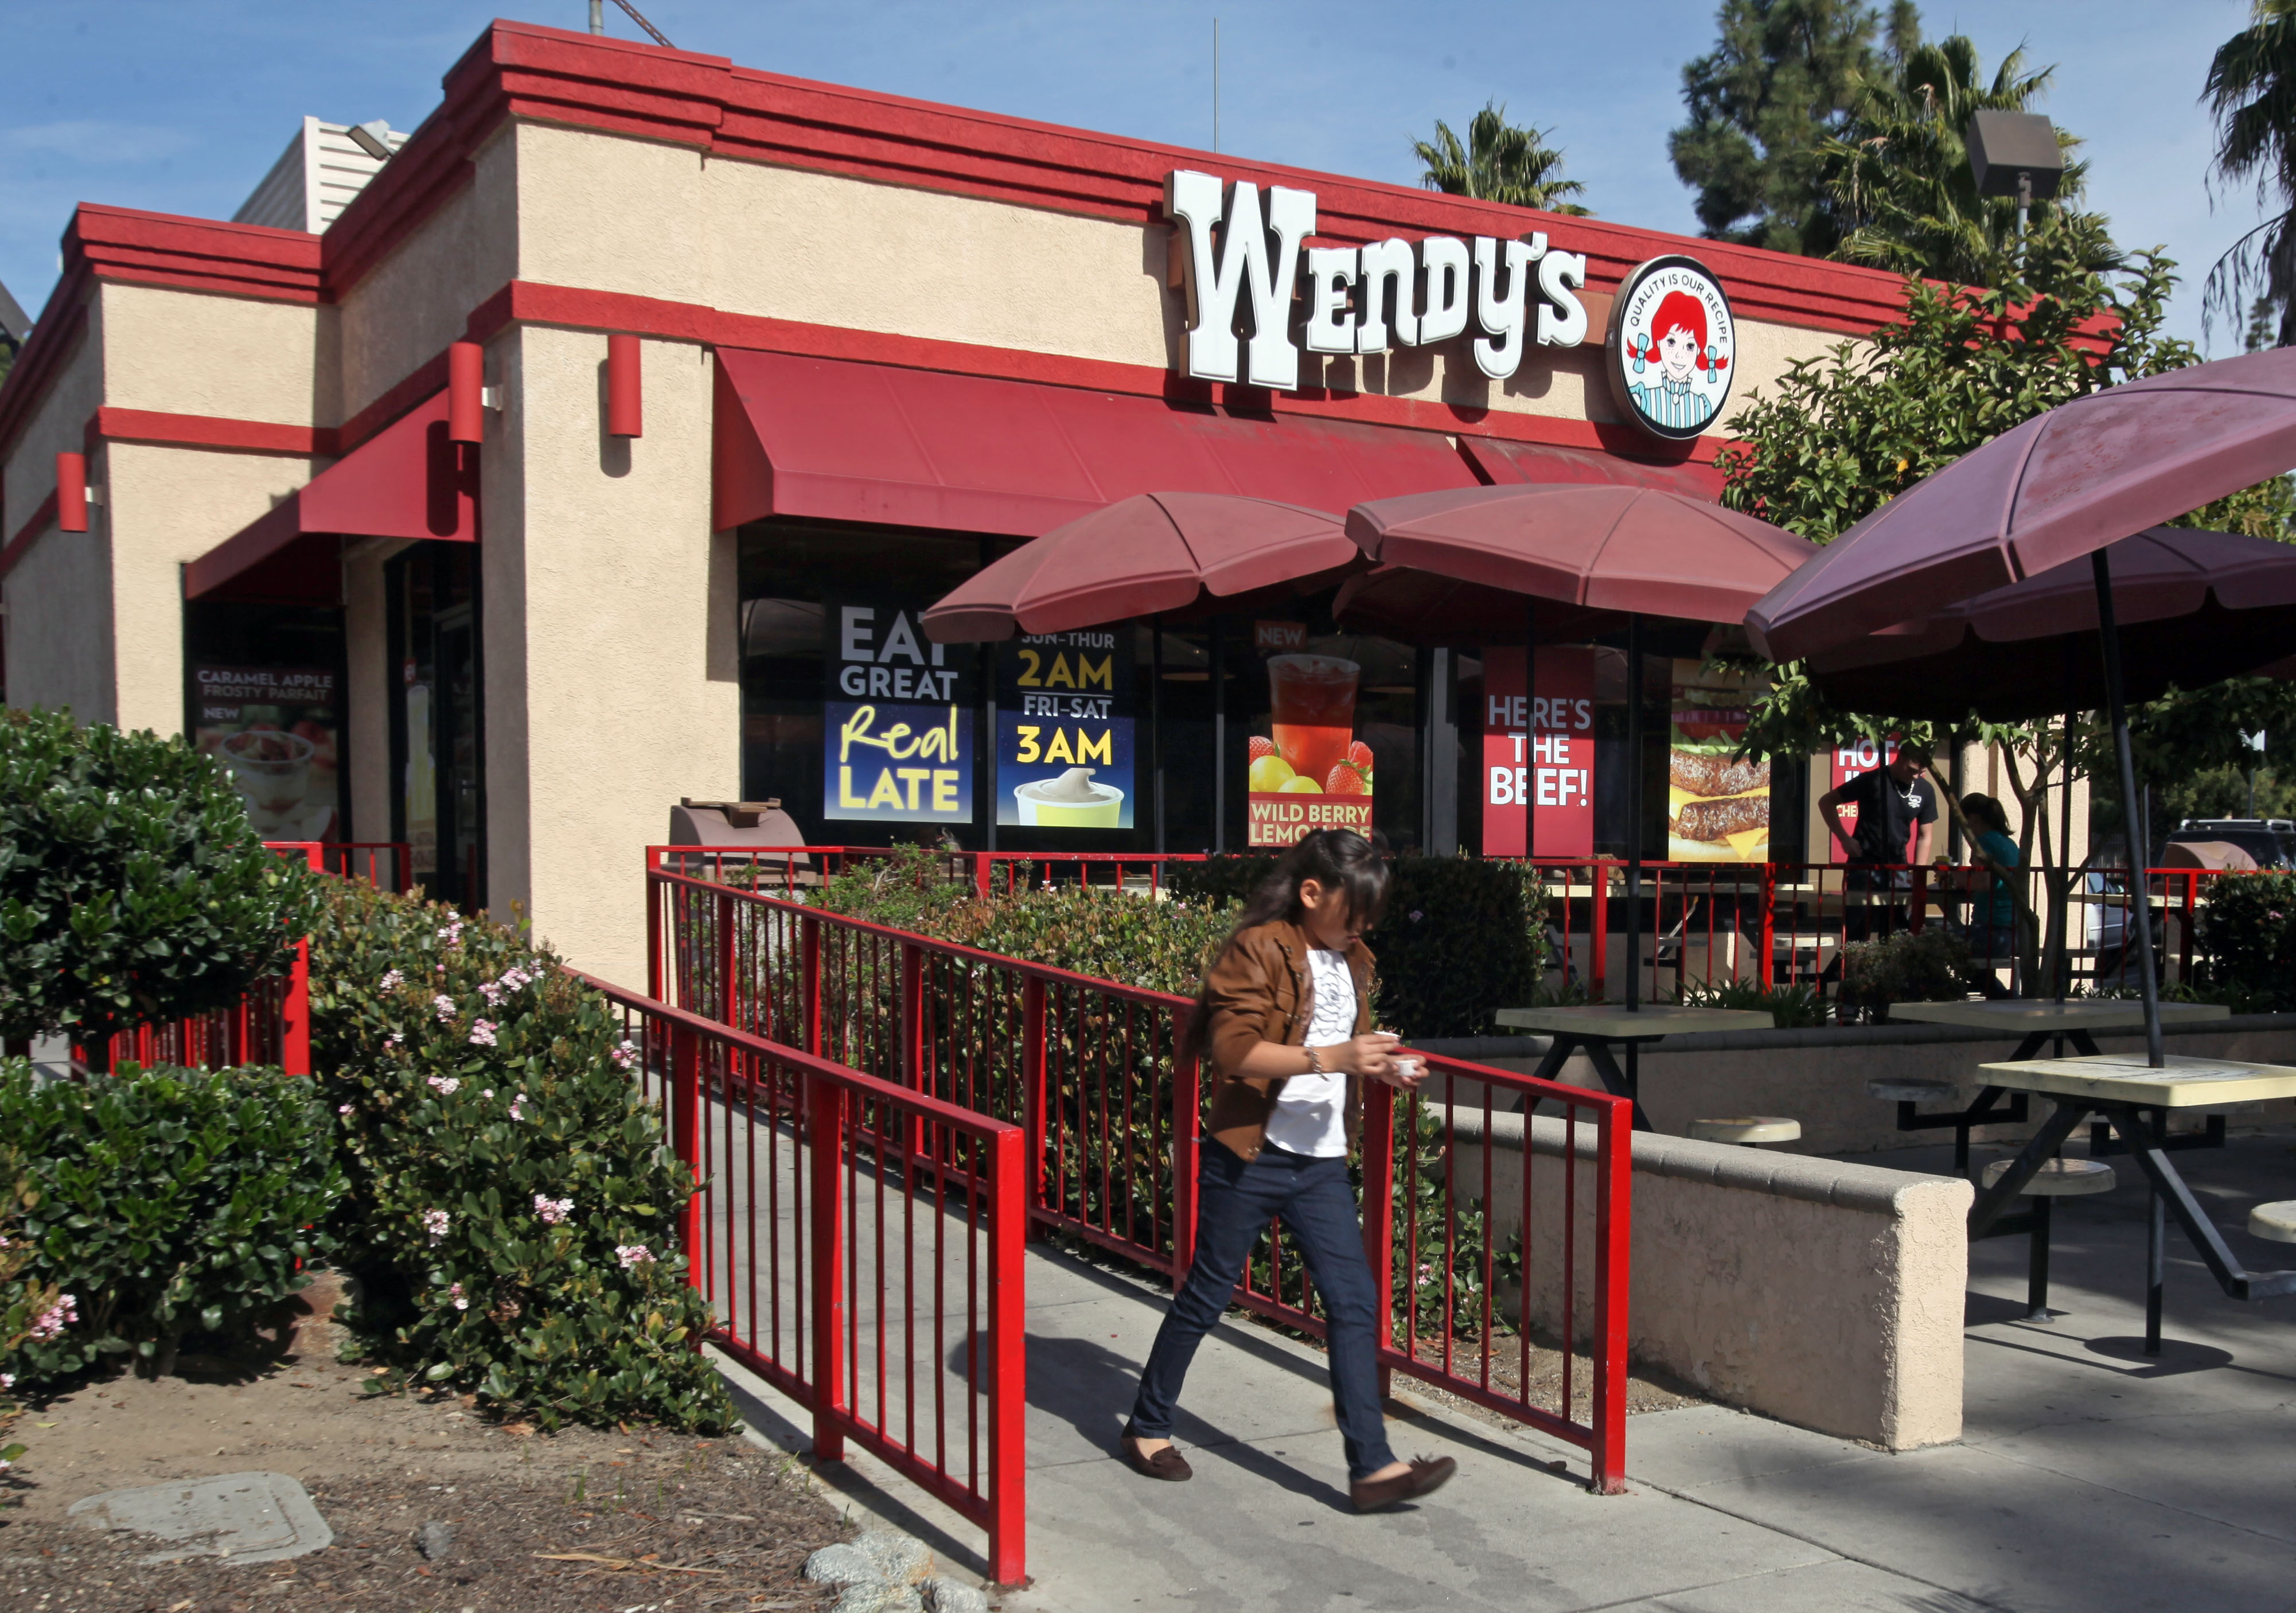 A customer leaves a Wendy's restaurant in Los Angeles.